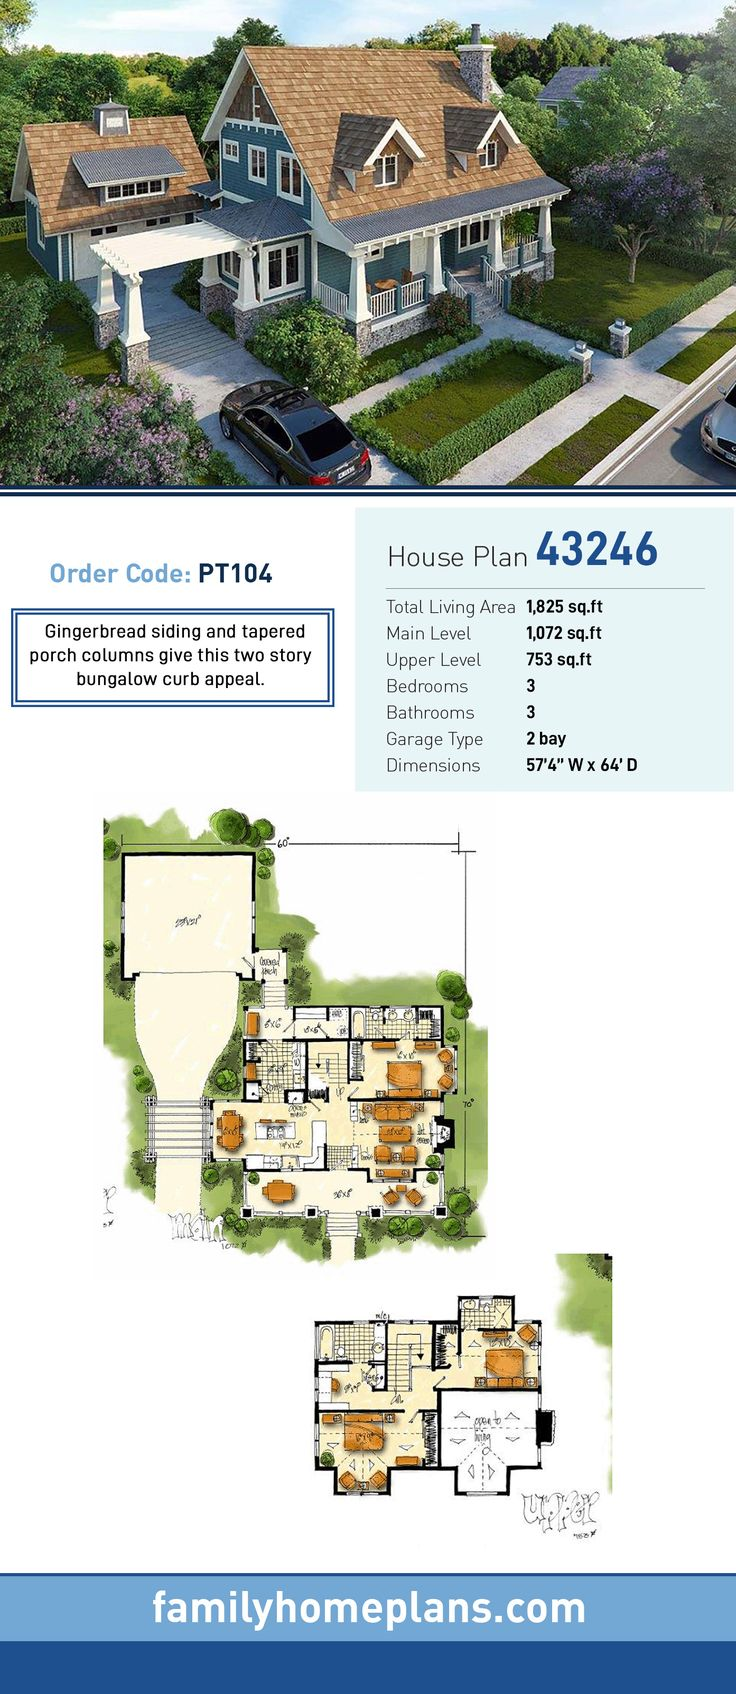 Craftsman Style House Plan Number 43246 with 3 Bed, 3 Bath, 2 Car Garage